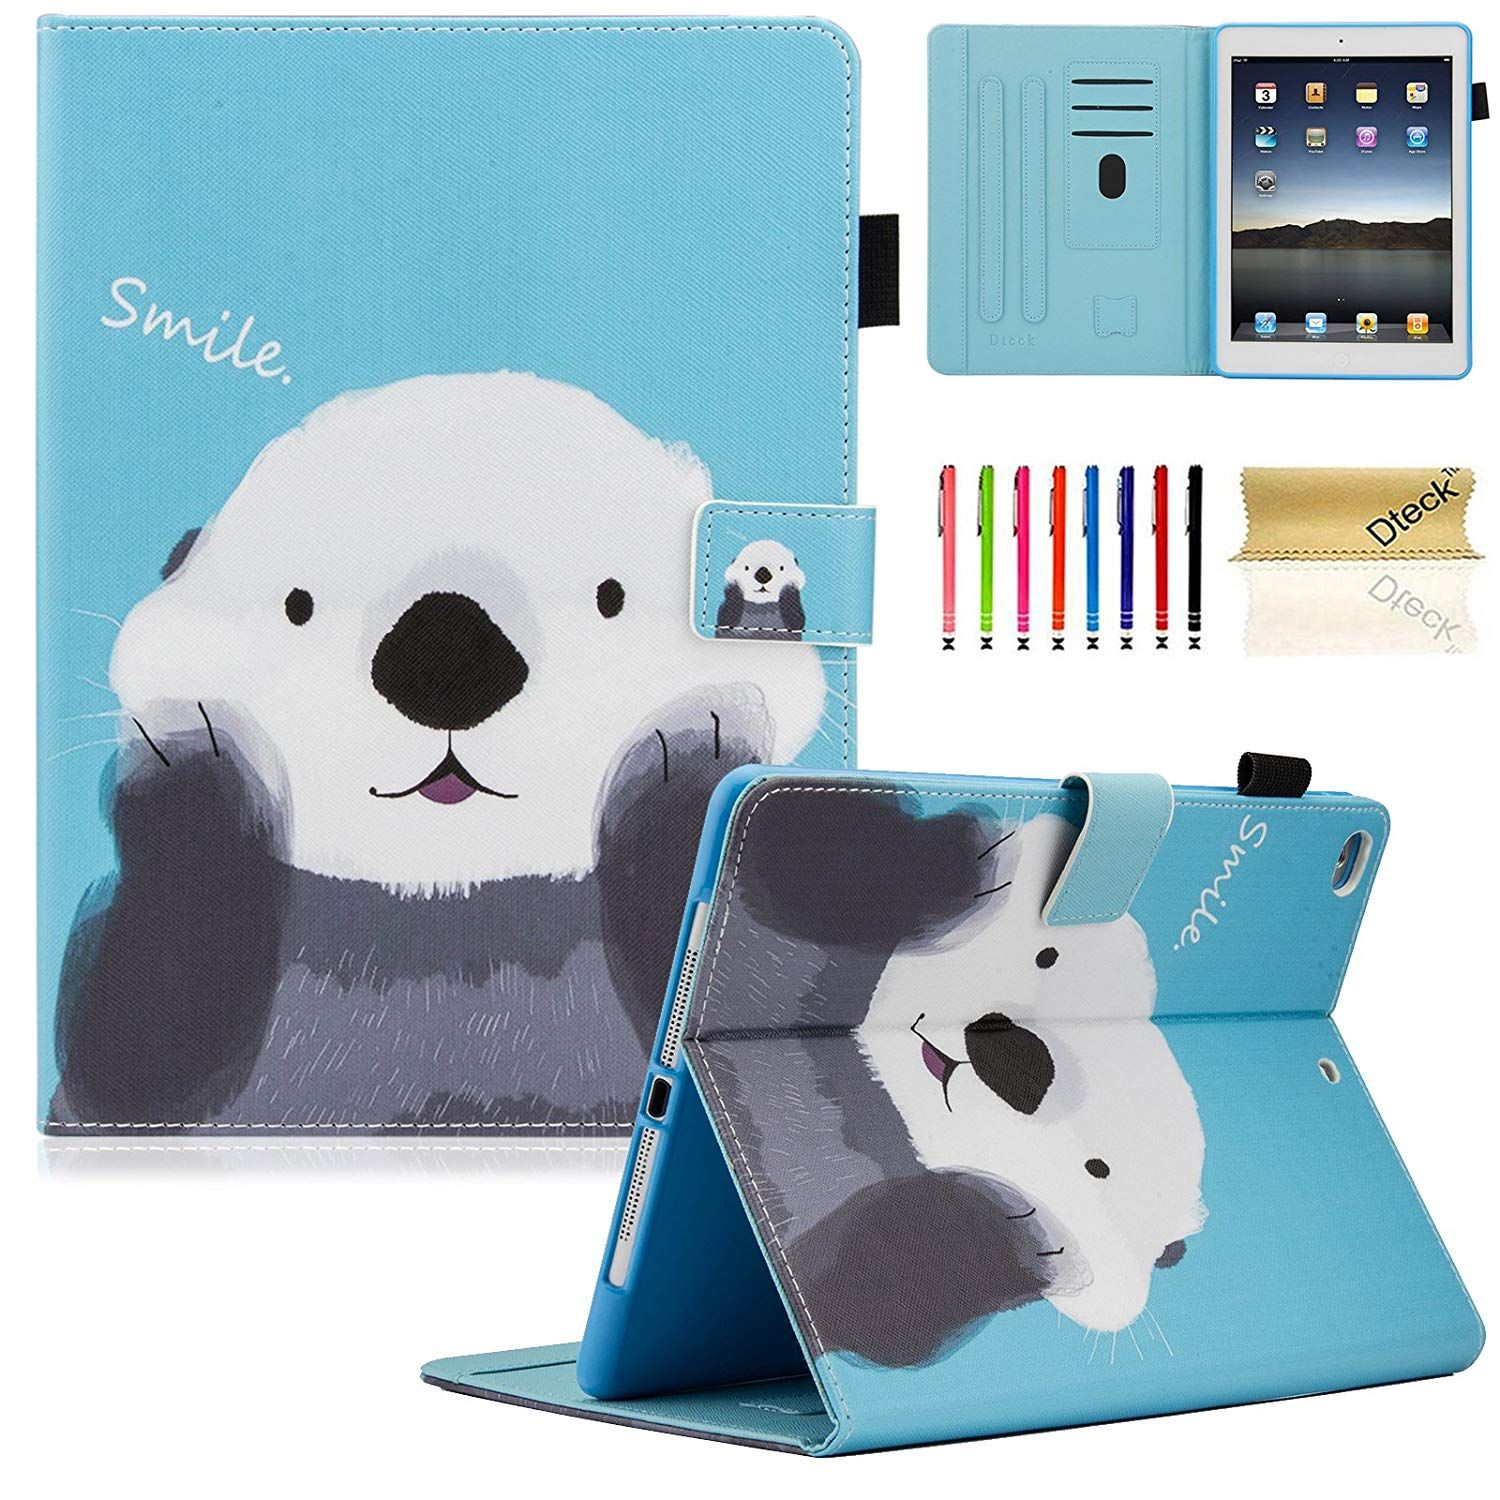 Top 50 Awesome Cute Girly Ipad Mini Cases Covers 2019 Updated Panda Ipad Case Cute Ipad Cases Ipad Mini Cases